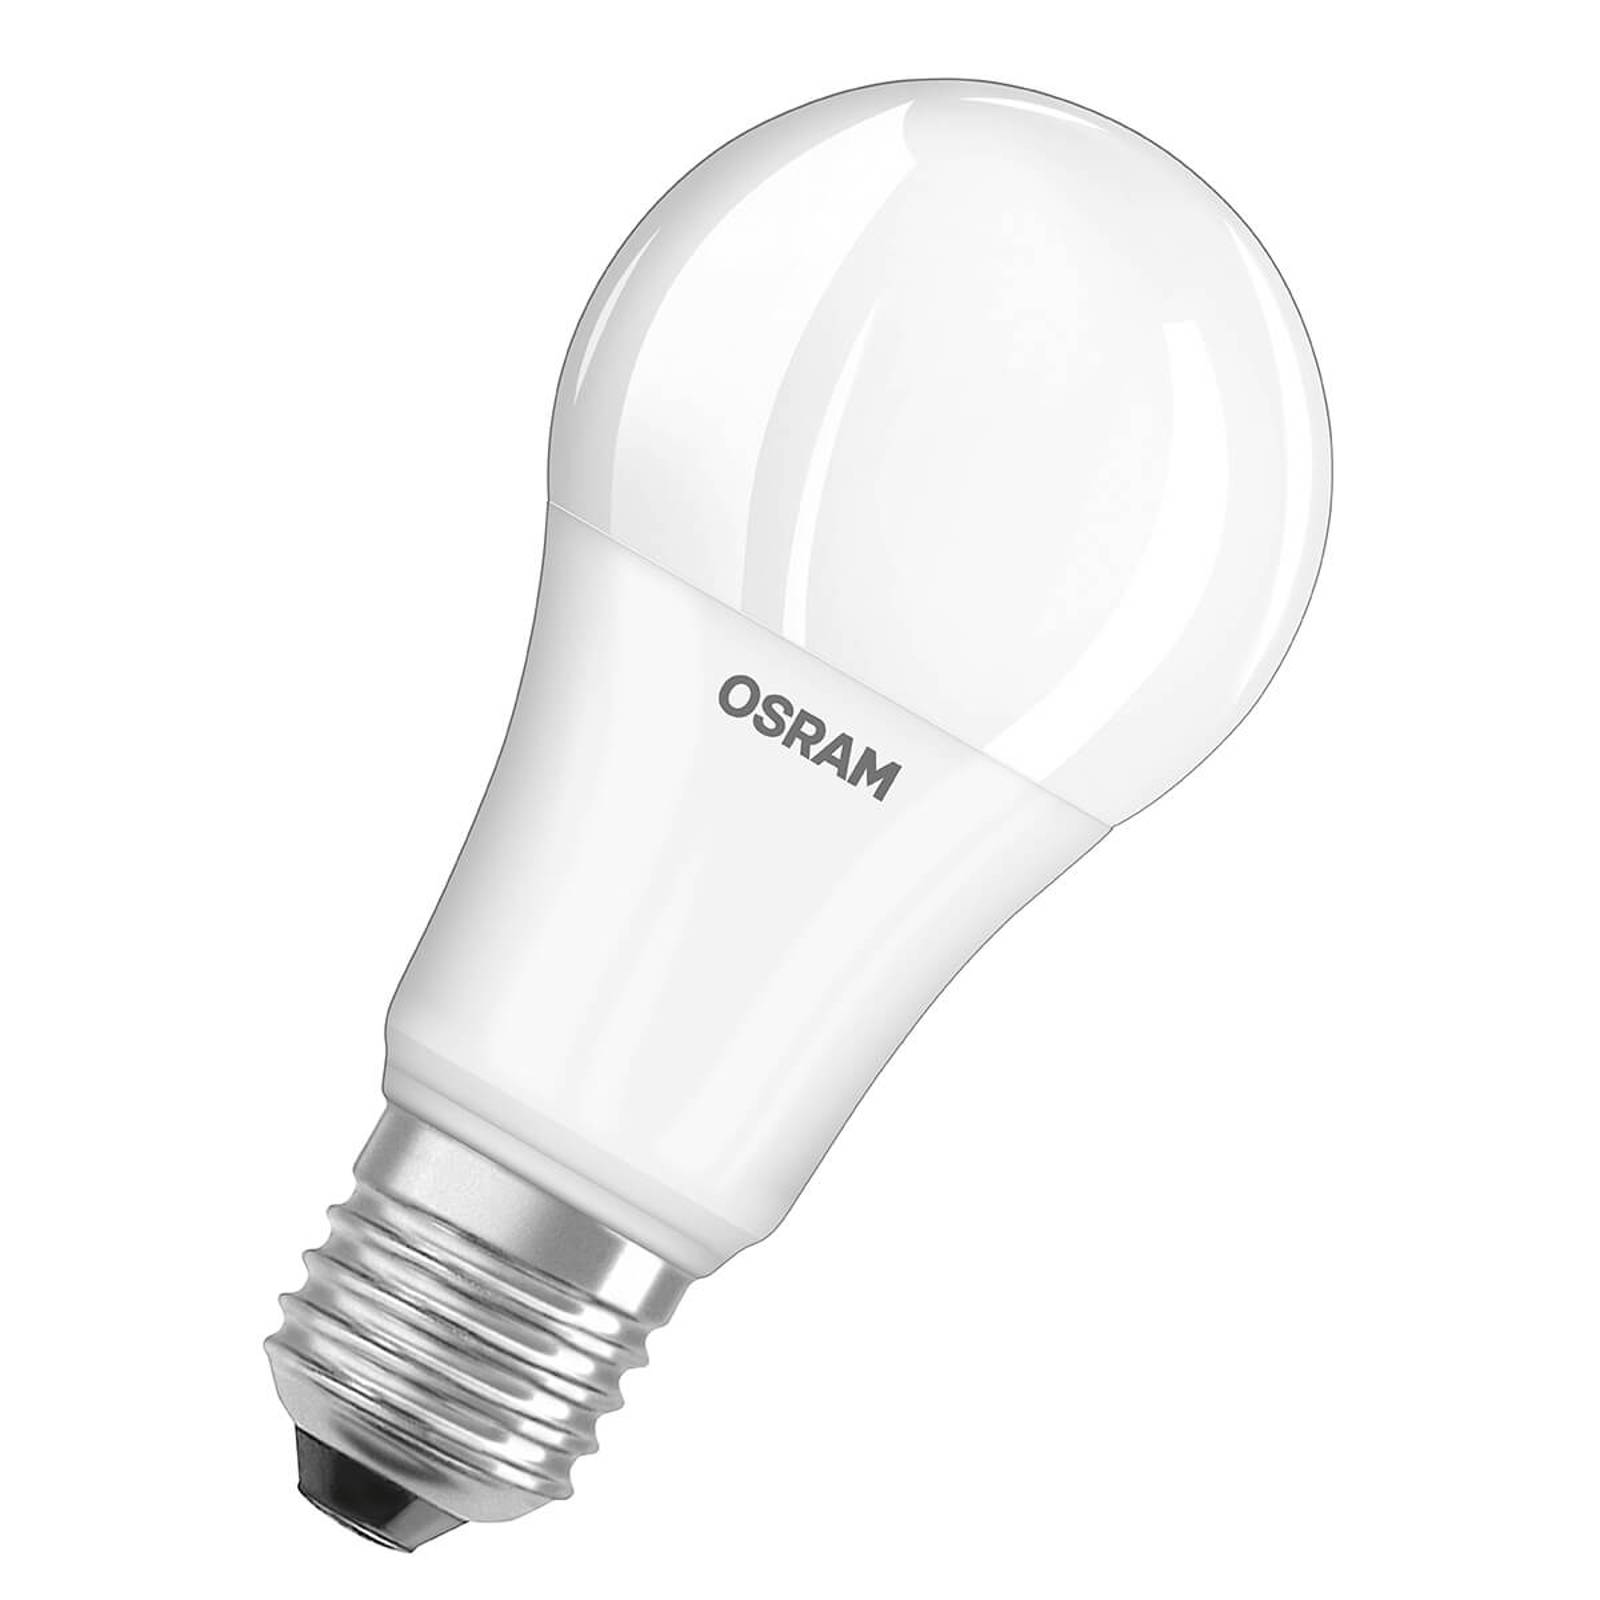 Lighting Incandescent Bulbs Find Offers Online And